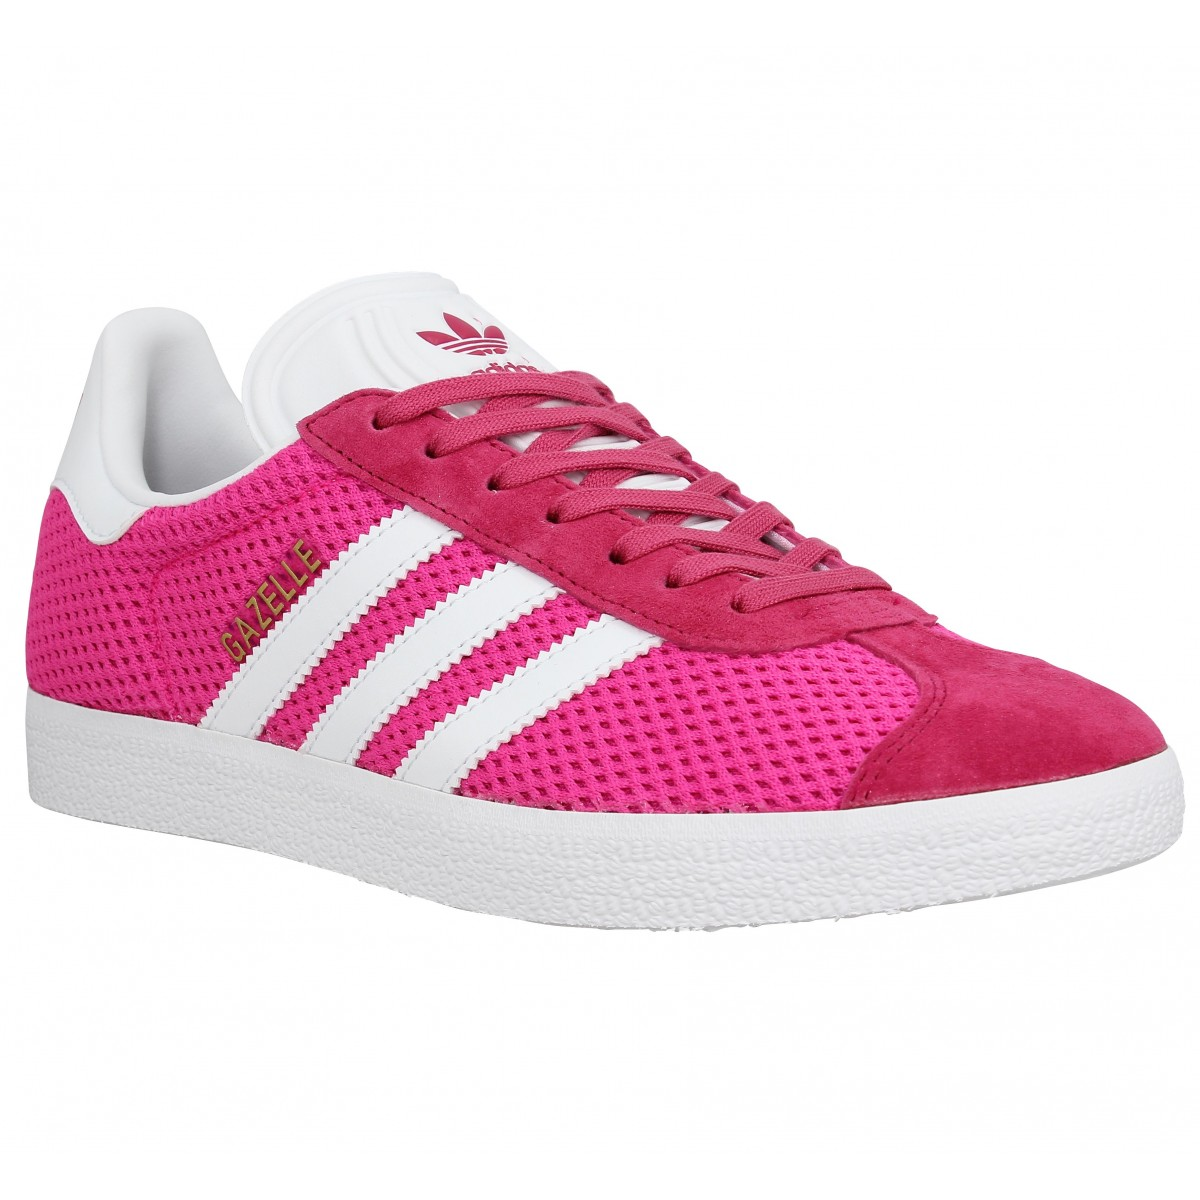 sports shoes dadb3 6df23 Baskets ADIDAS Gazelle knit Femme Rose